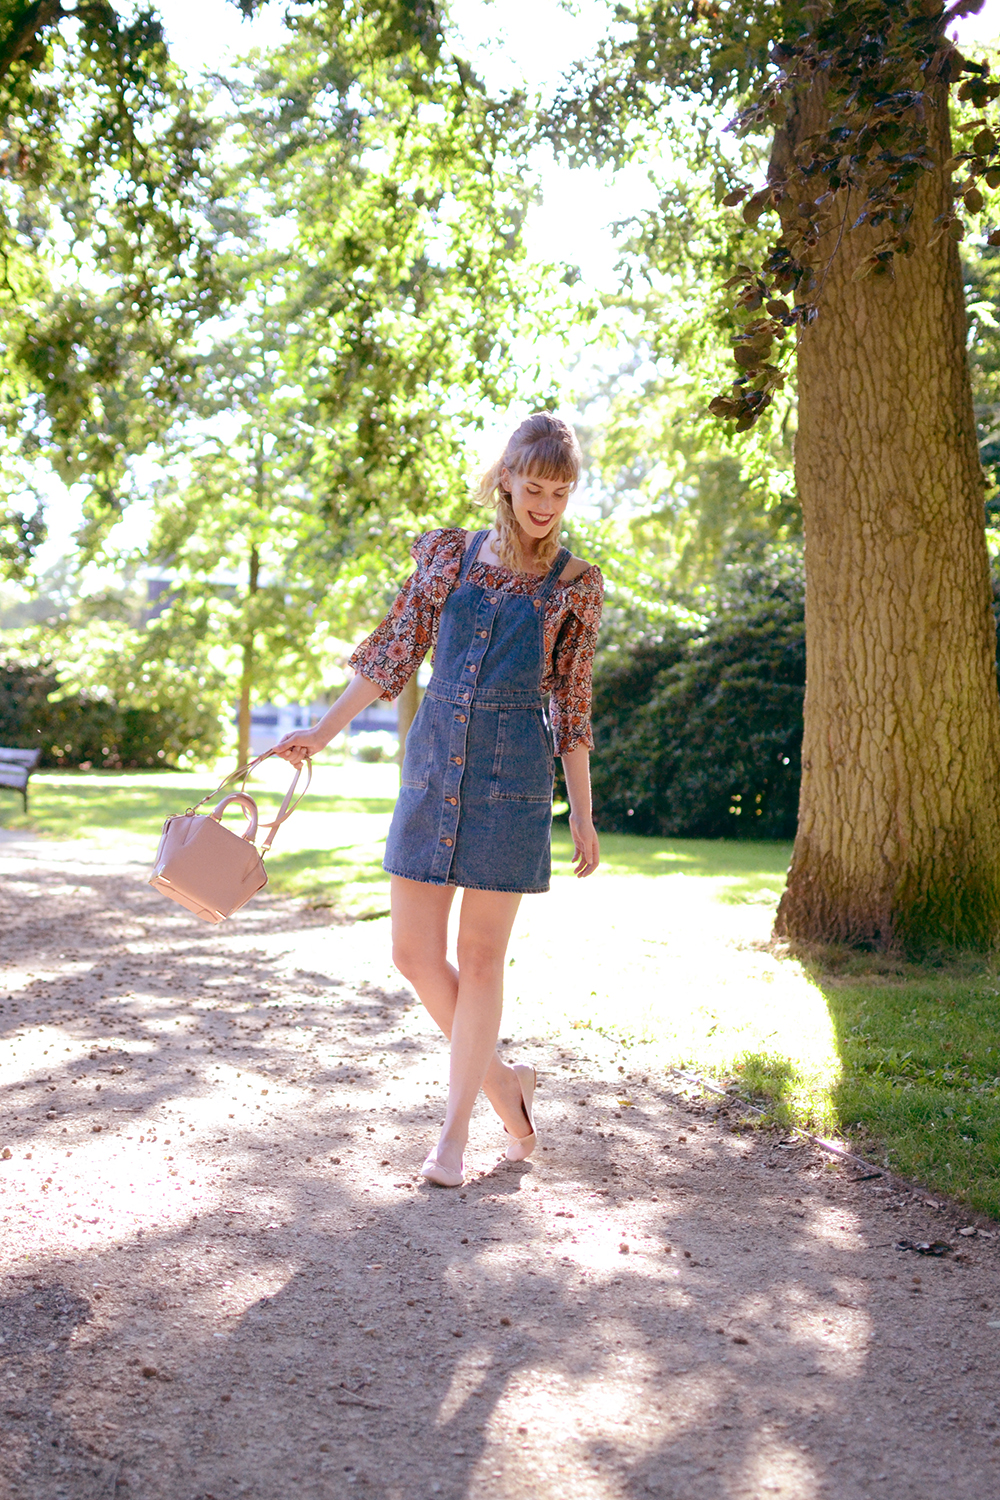 Retromantisch retro romantic fashion blog floral top Glamorous Monki pinafore jurk dress dungaree Alexander Wang bag Emile blush H&M flats ballerina